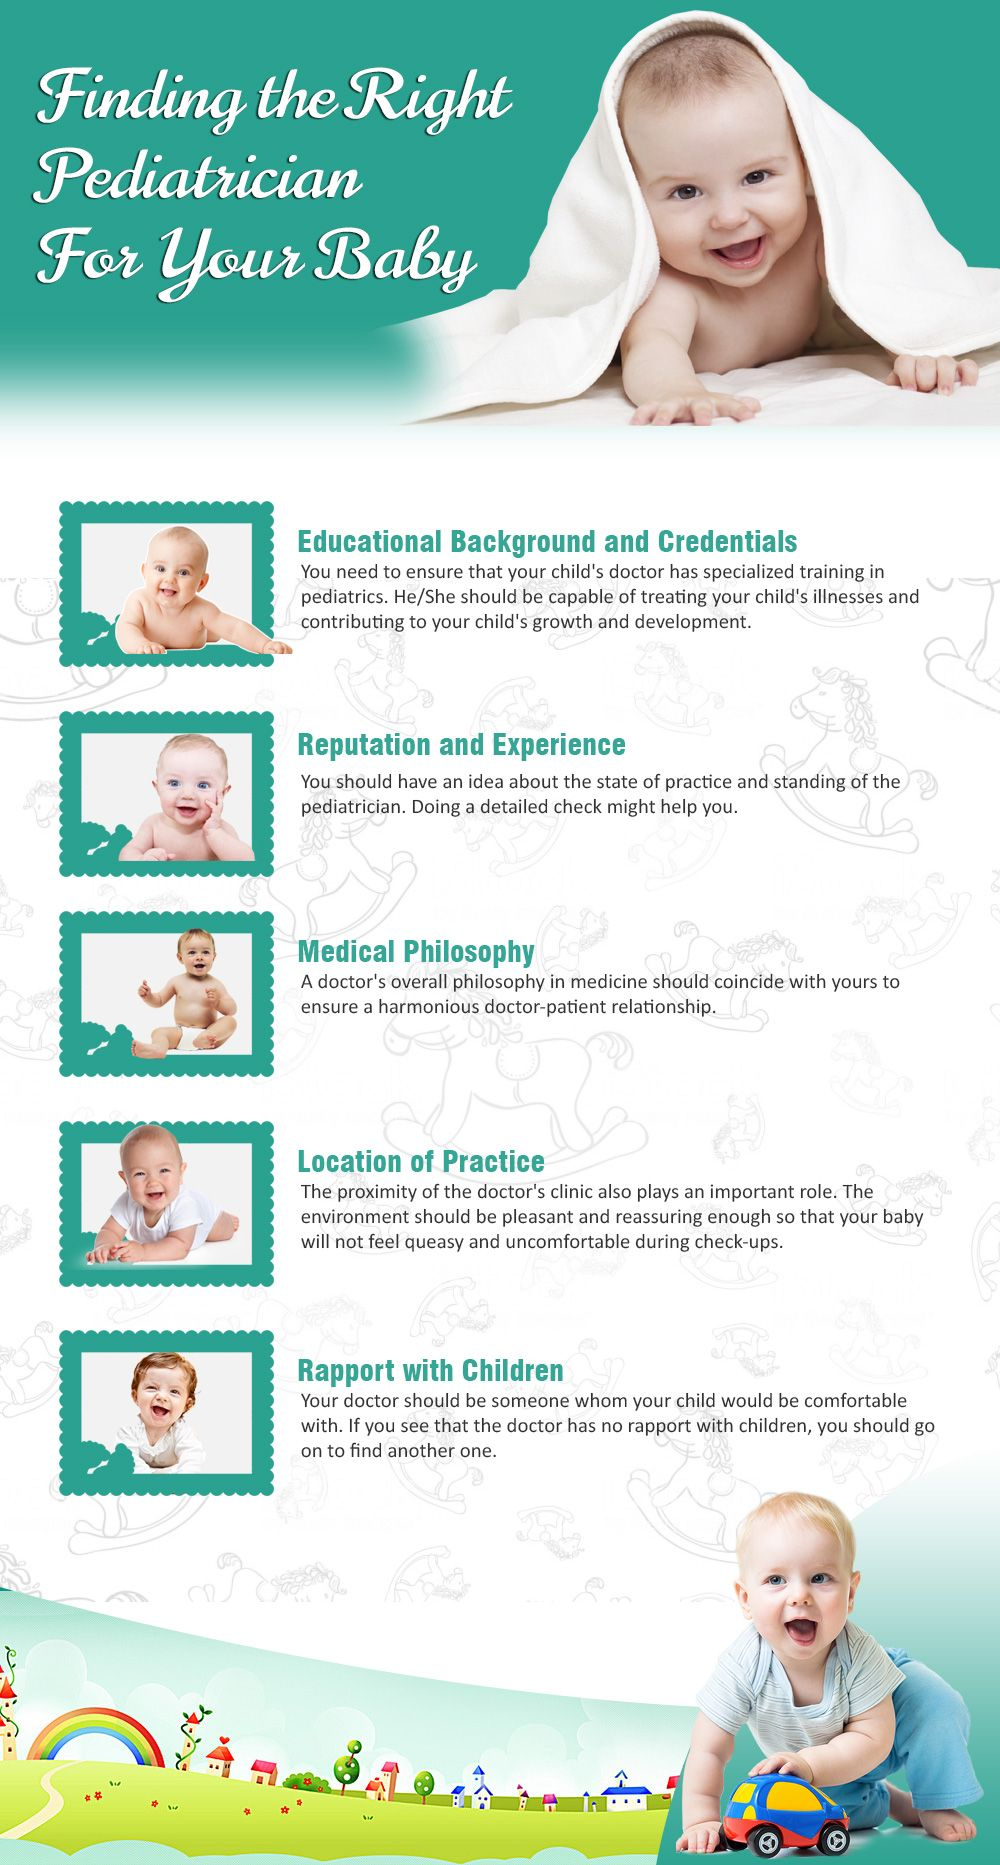 Finding The Right Pediatrician For Your Baby Pediatrician Doctor For Kids Childs Growth